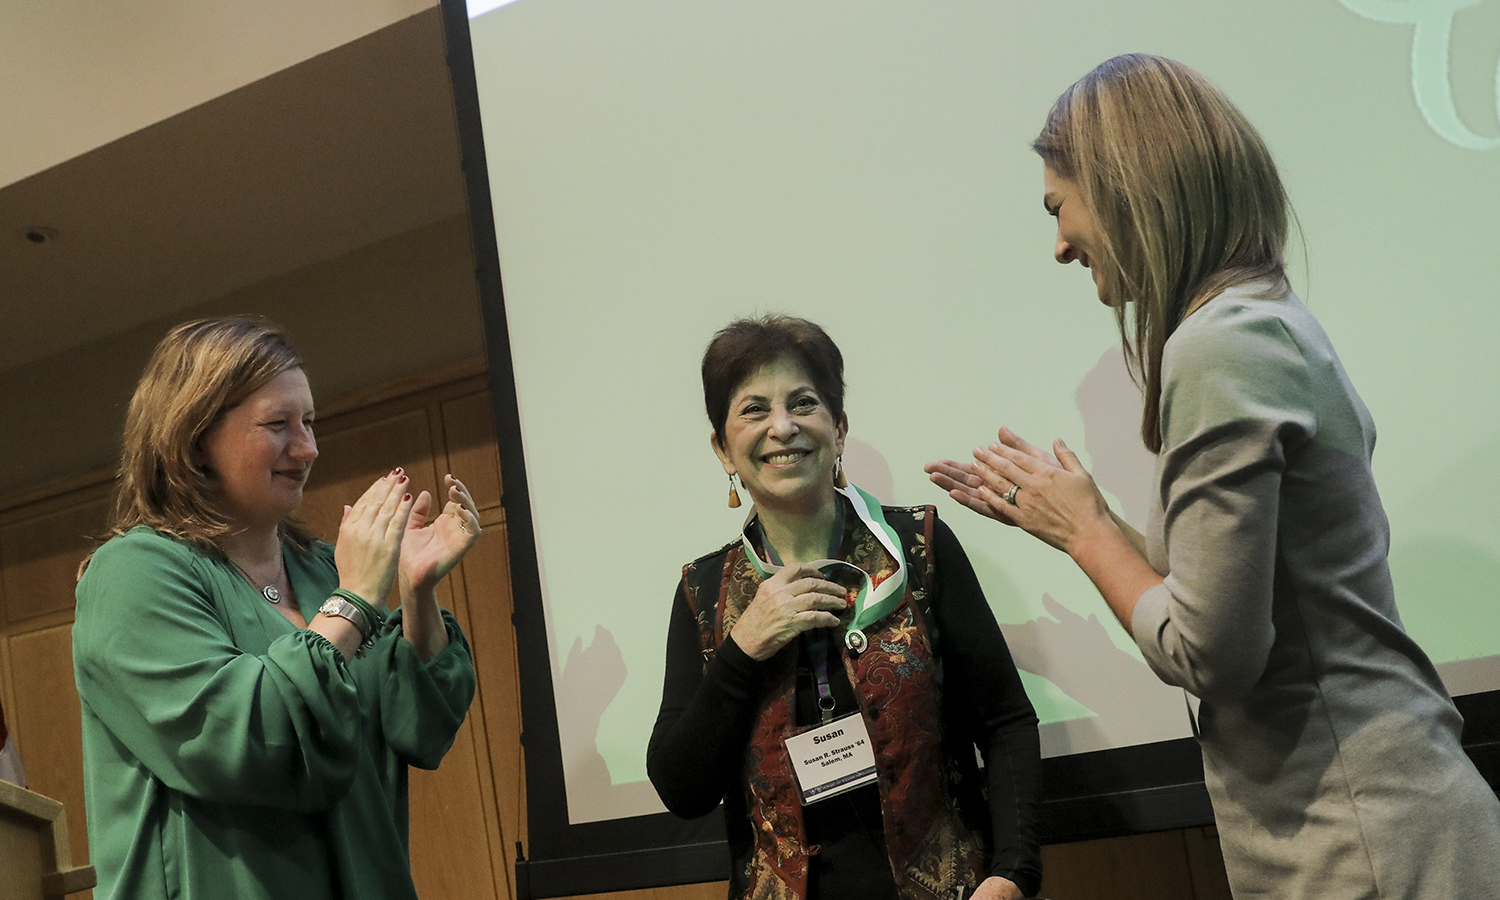 Social justice and labor activist Susan Strauss '64 accepts the William Smith Alumna Achievement Award from Alumna Association President Julie Bazan '93 and Vice President Kirra Henick-Kling Guard '08, MAT '09  during the William Smith College Founder's Day celebration on Thursday.